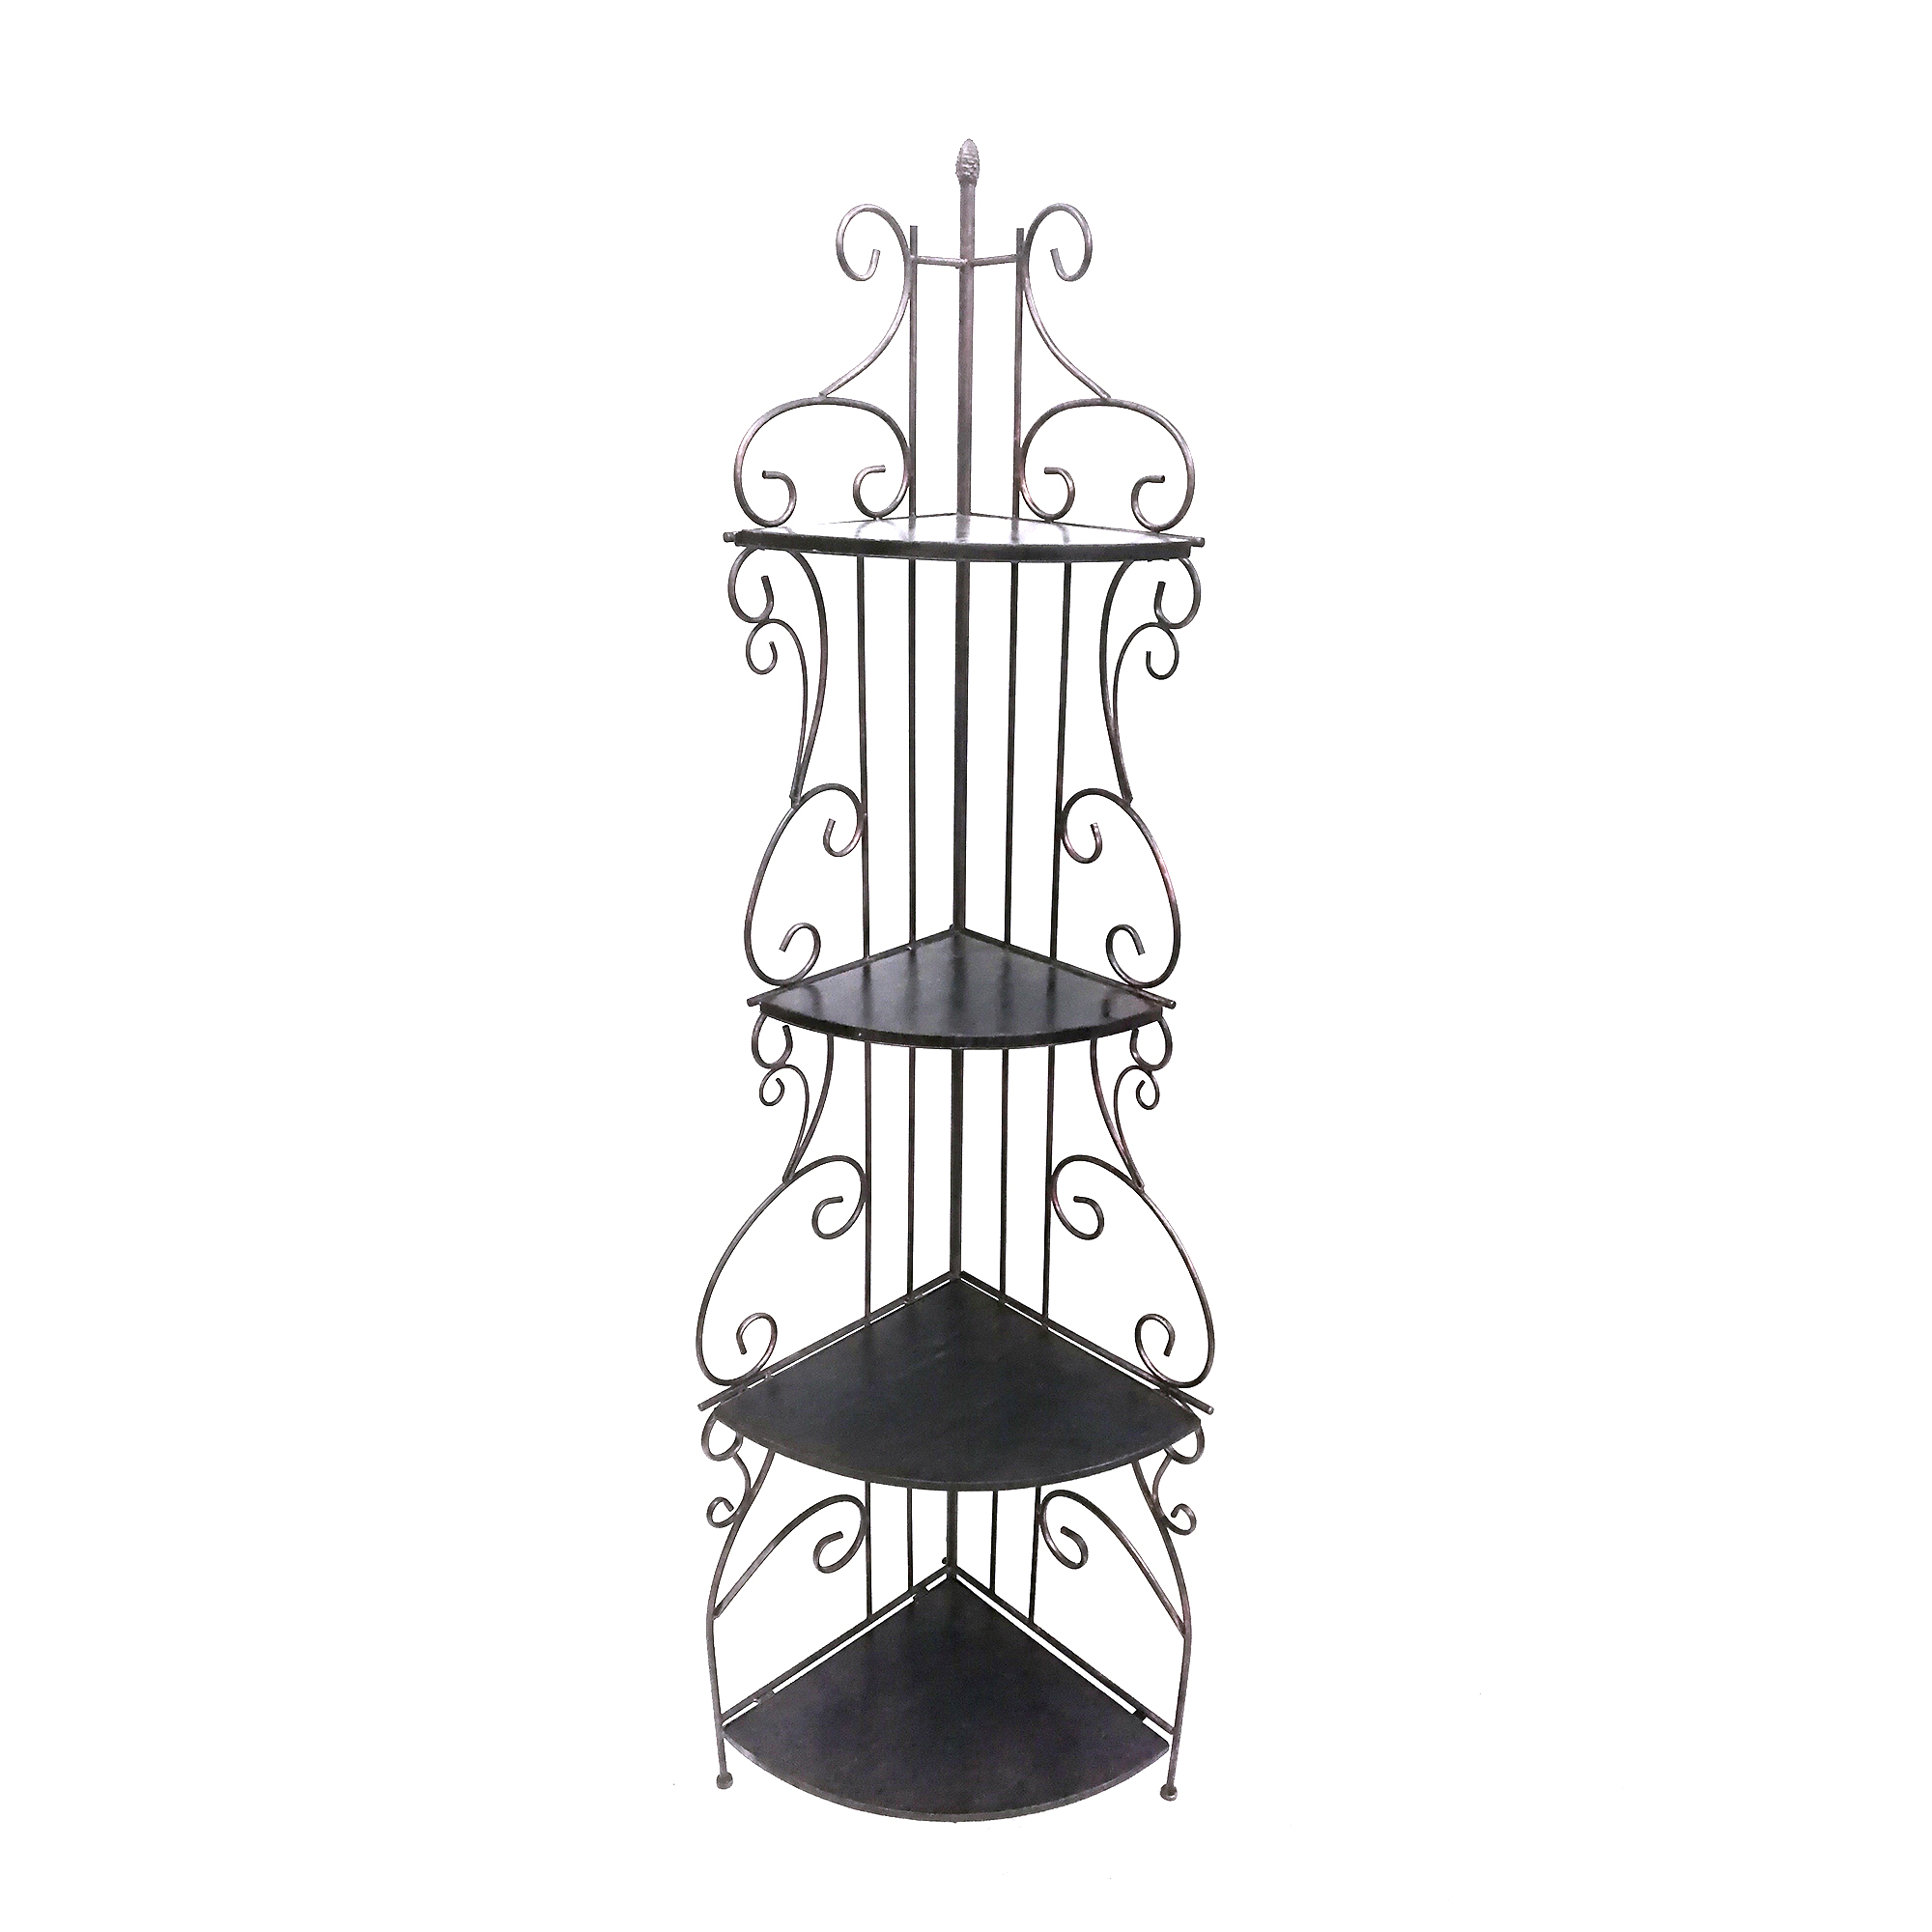 Scrollwork Design Metal Corner Bookcase with Four Wooden Shelves, Black and Copper